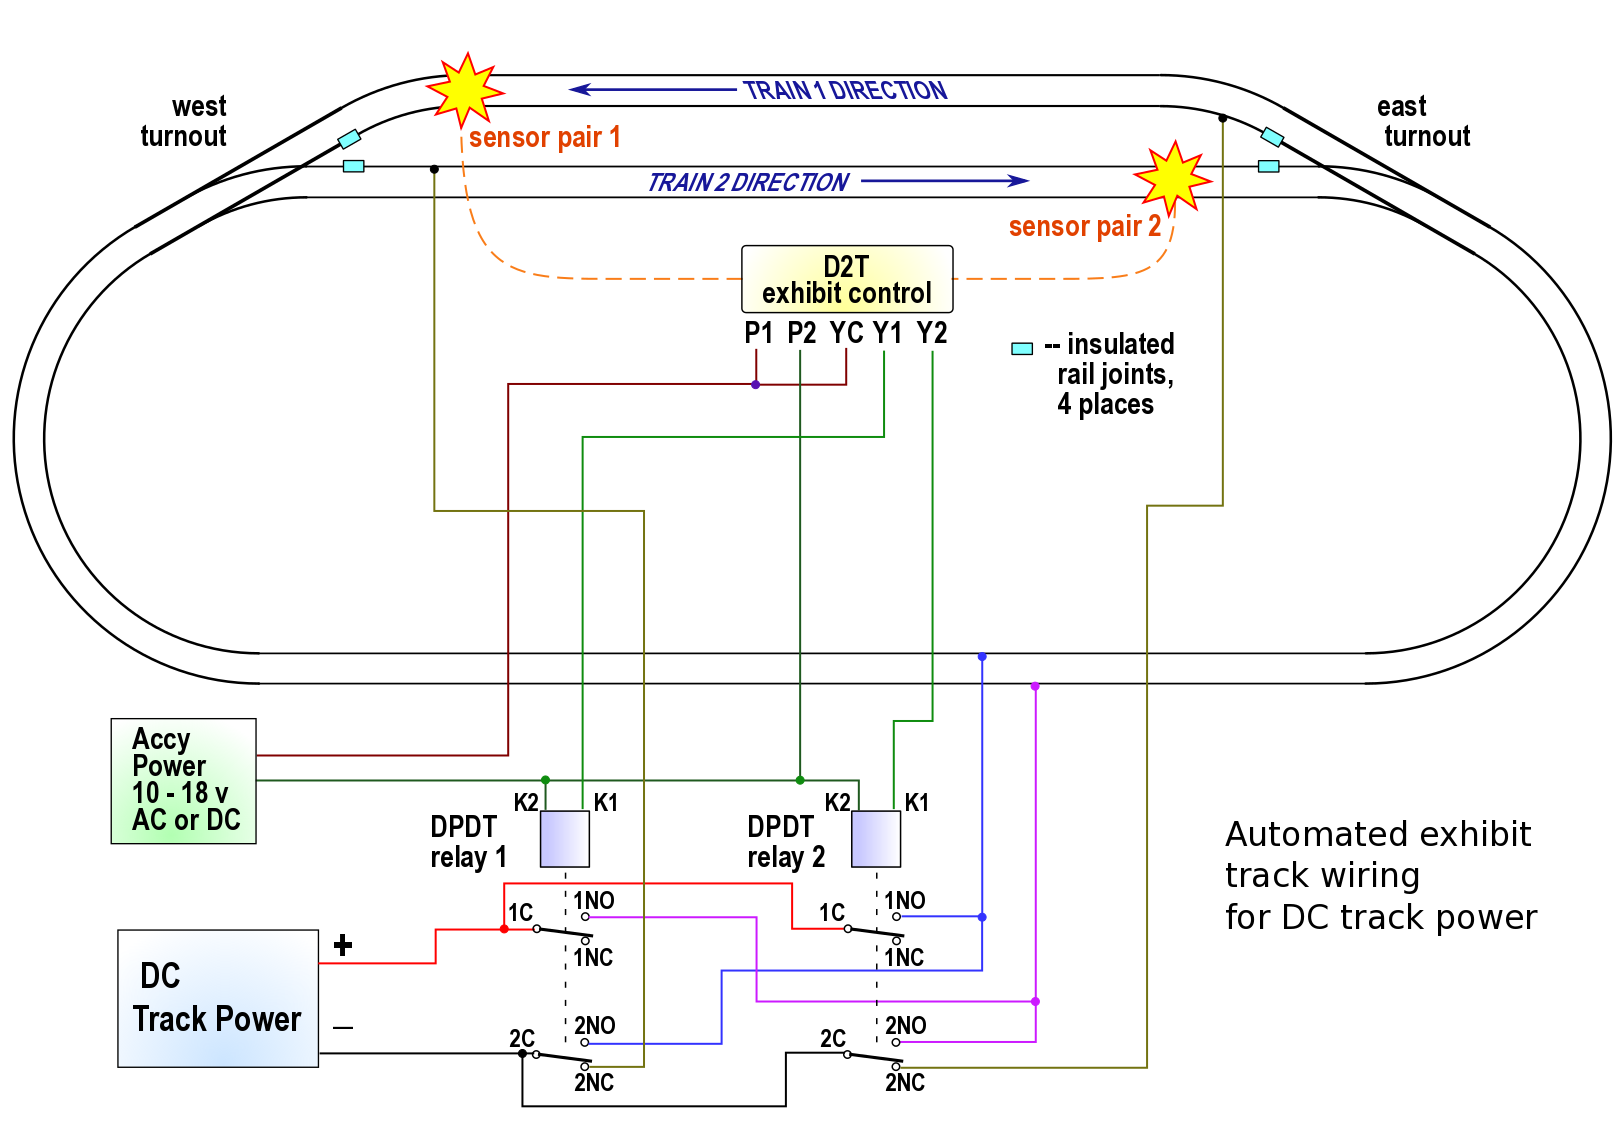 hight resolution of kato wiring diagrams wiring diagram go kato ho track wiring manual e book kato wiring diagrams